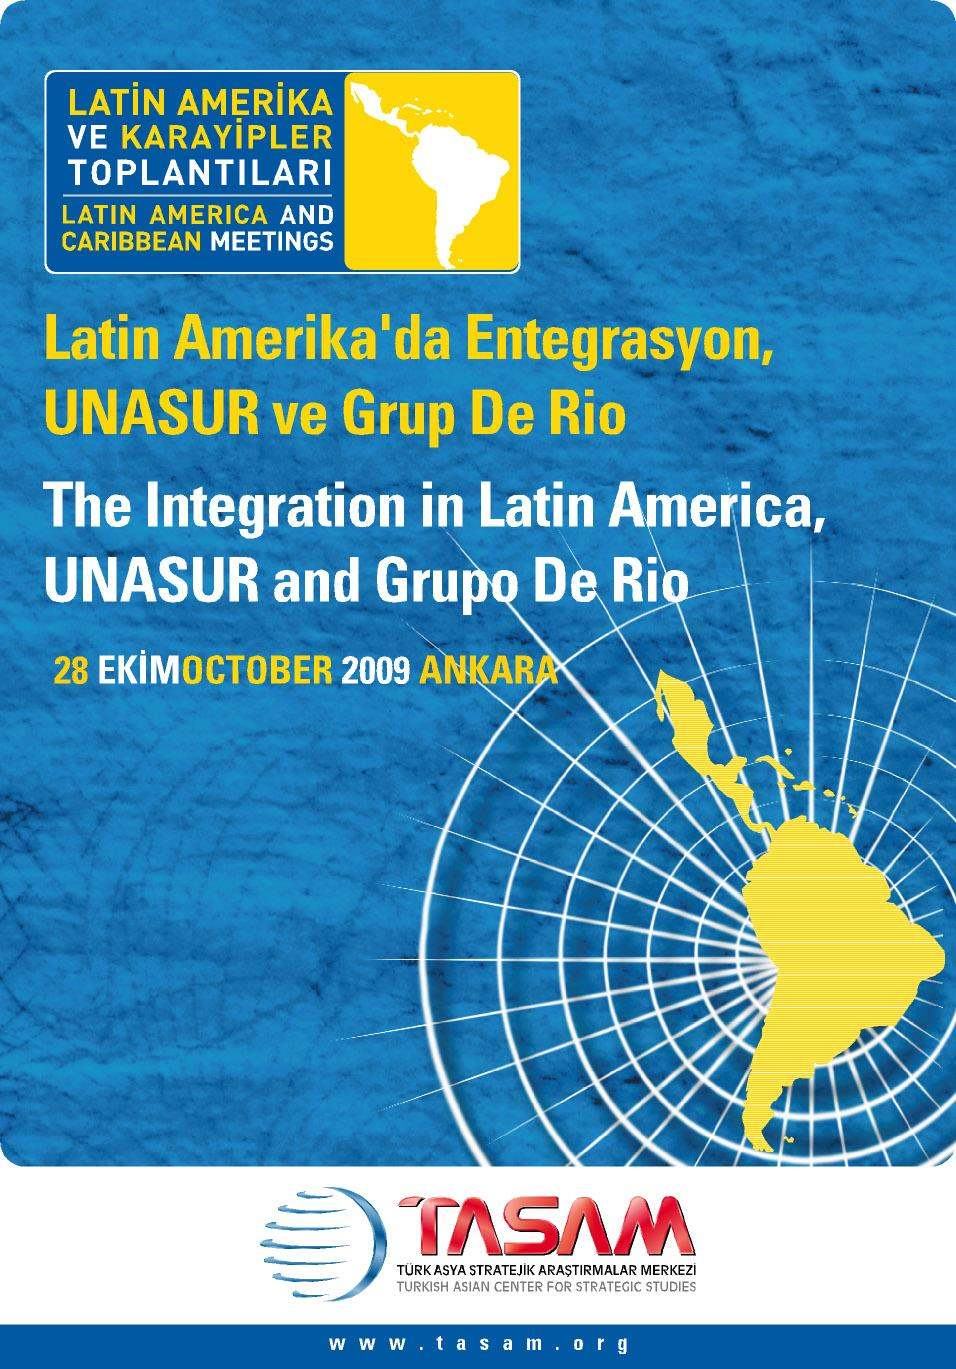 TASAM Ankara Latin America And Caribbean Meetings - 3